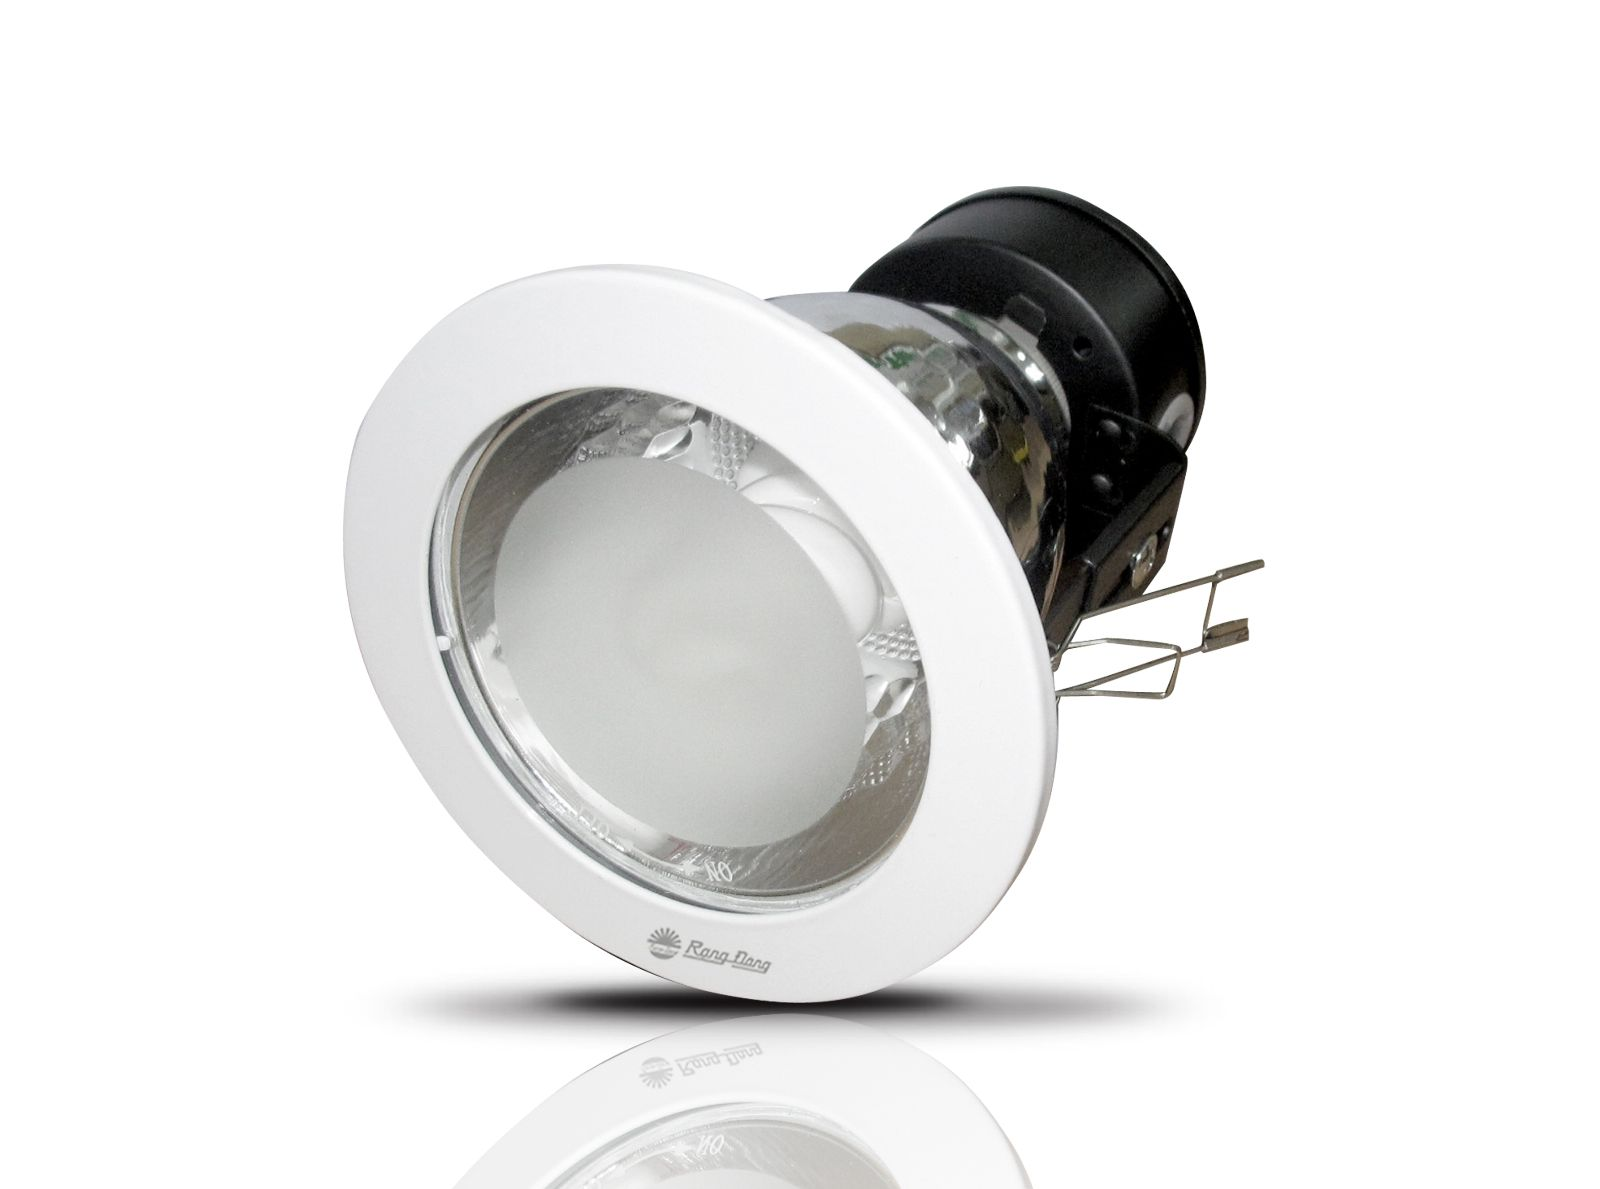 Chao đ 232 N Downlight C Cfl At03 100 Ck Rạng Đ 244 Ng